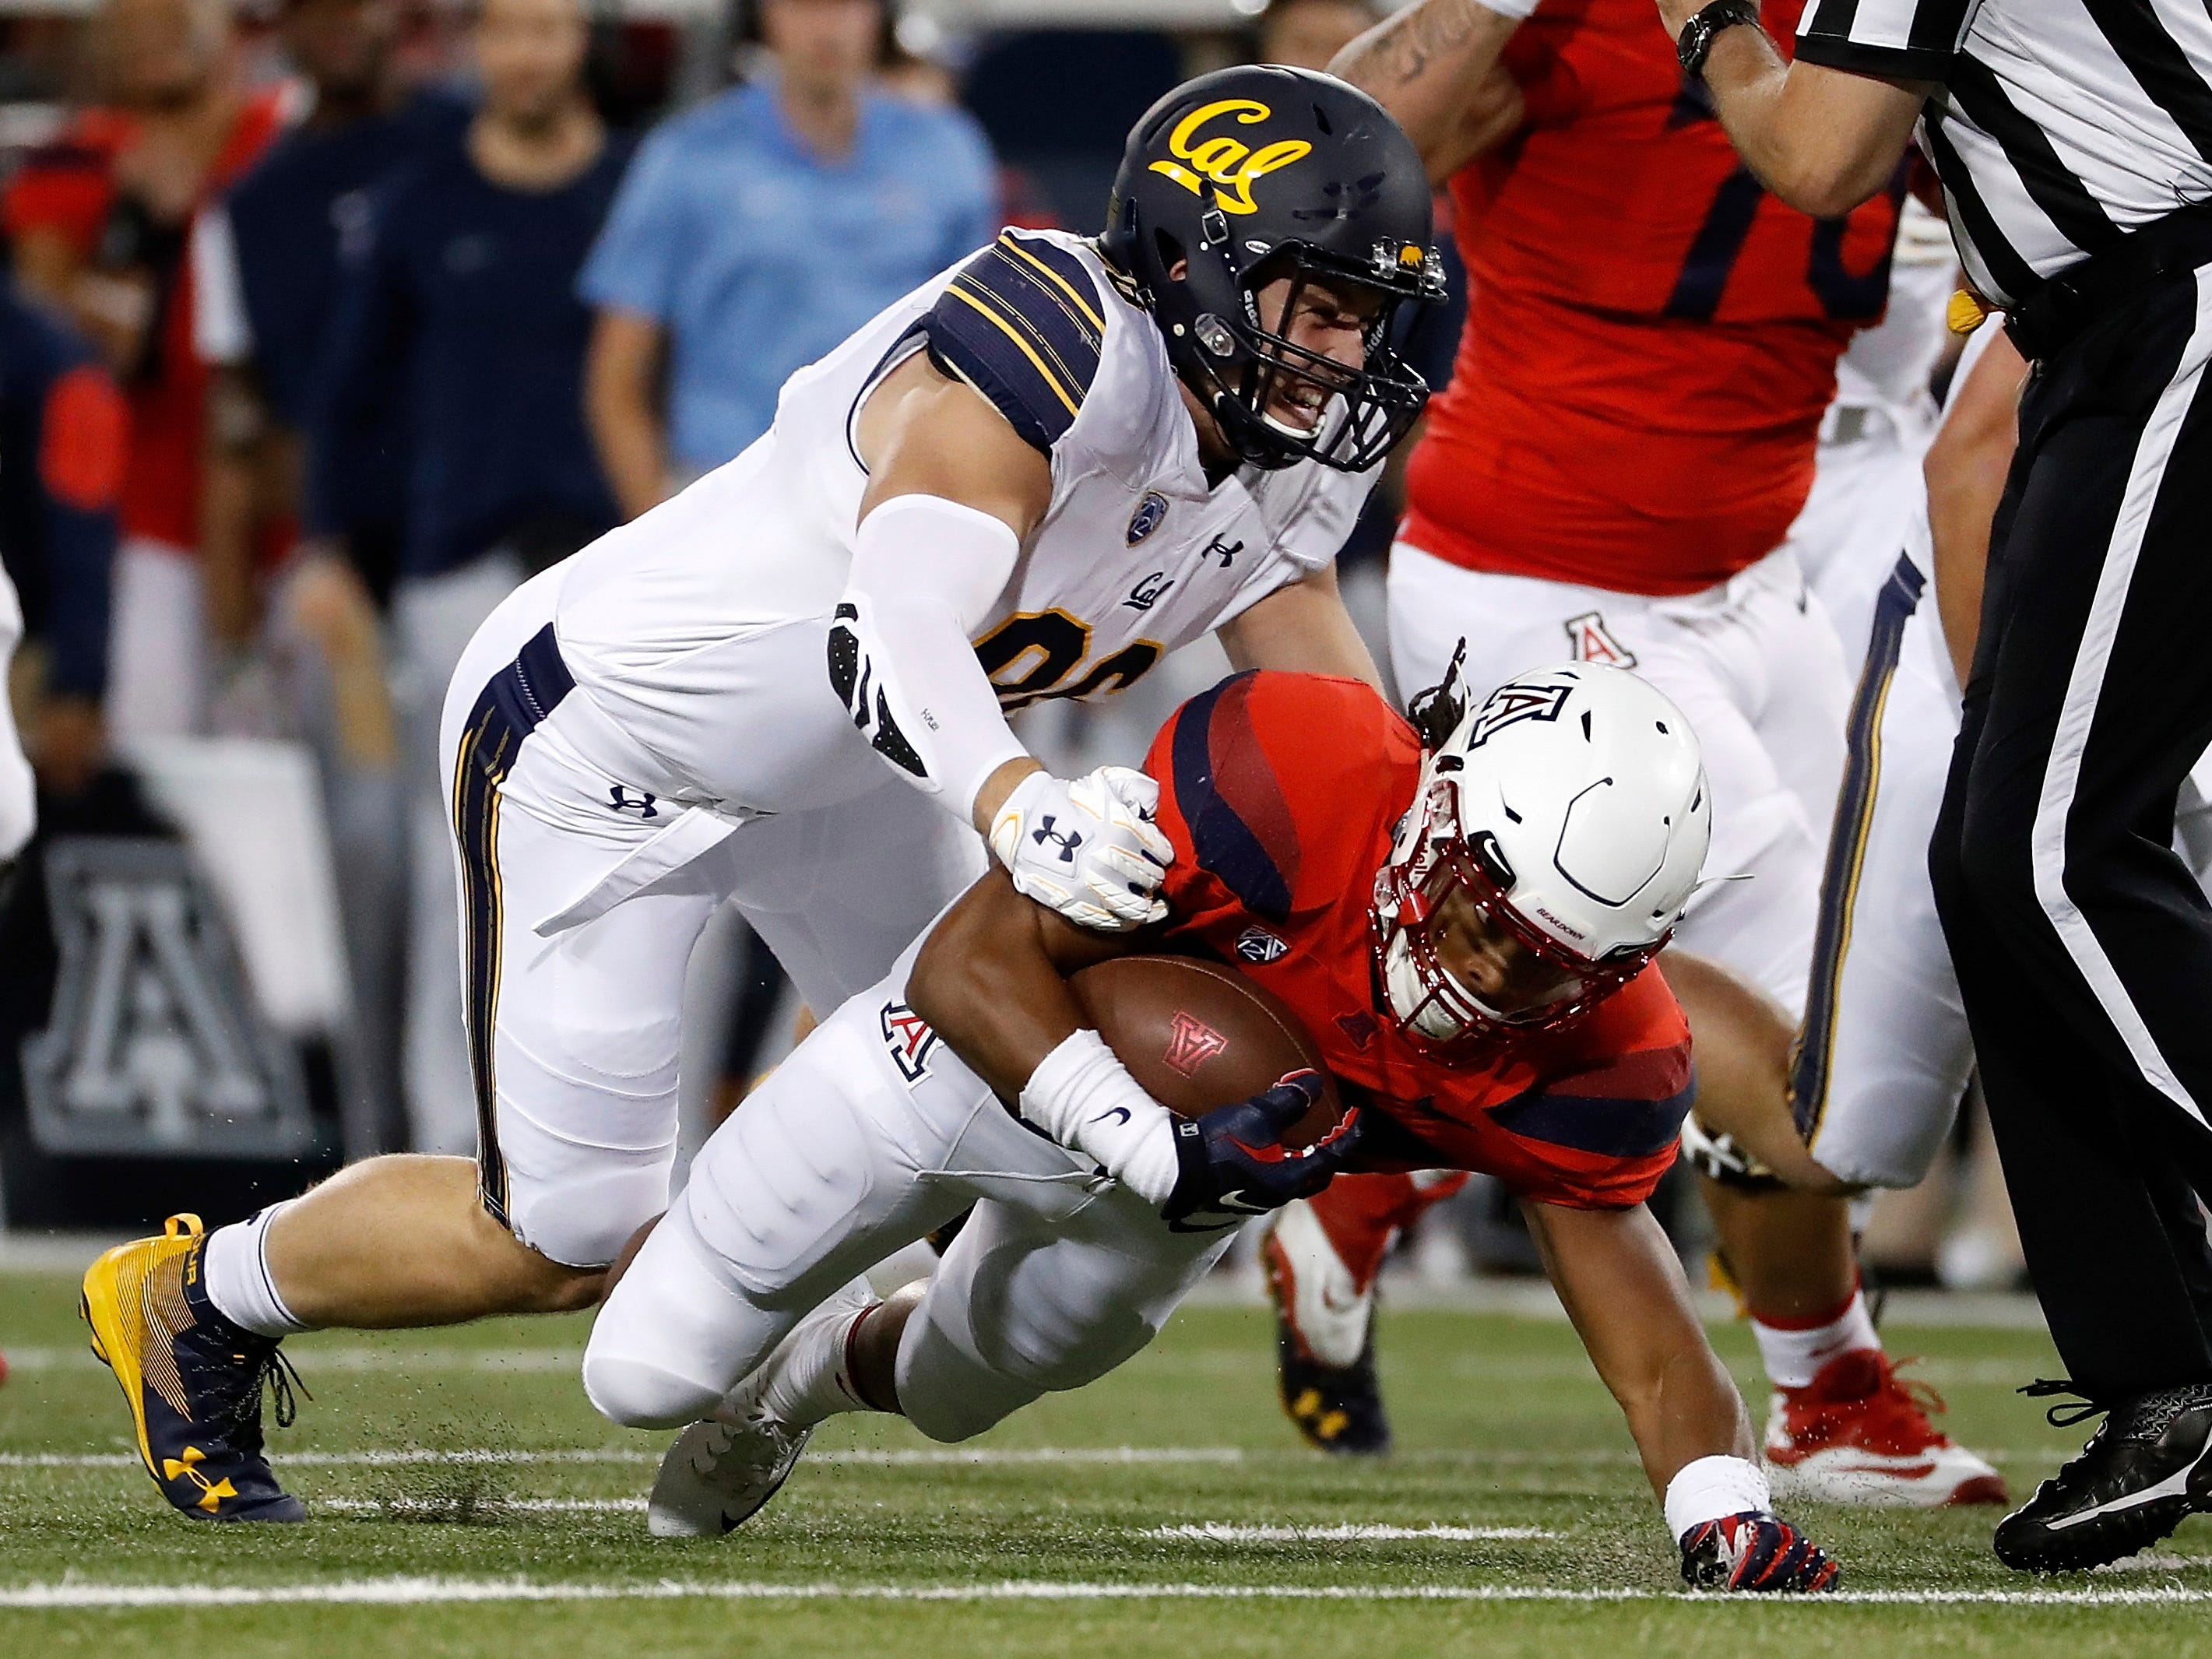 California defensive end Tevin Paul (96) tackles Arizona running back Gary Brightwell (23) during the first half of an NCAA college football game Saturday, Oct. 6, 2018, in Tucson, Ariz. (AP Photo/Chris Coduto)